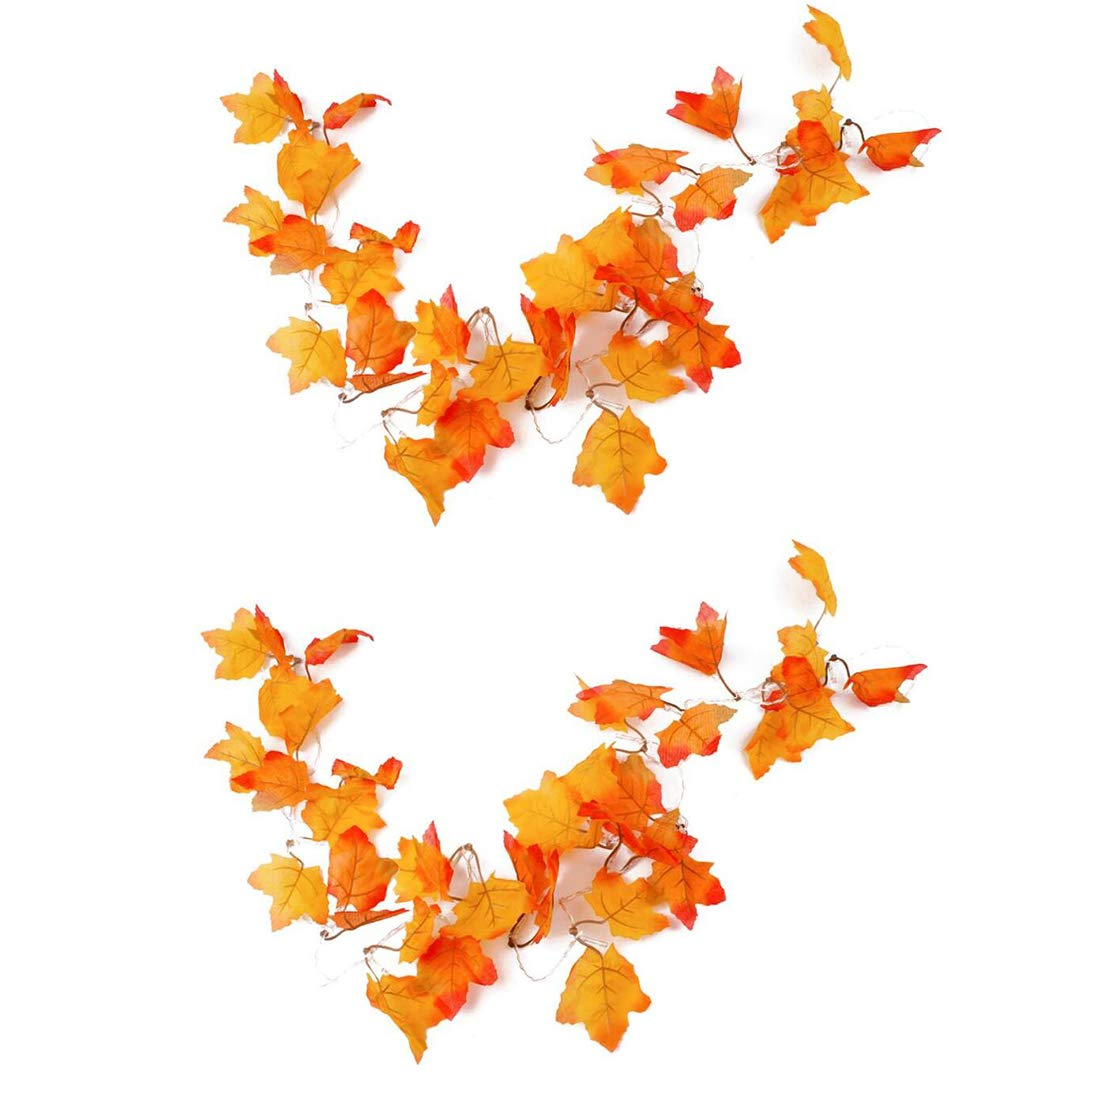 Thanksgiving Decorations Lighted LED Strip Lights Home Decorations Lighted -Shades of Orange and Yellow Leaves Fall Garland / 8.2 x 2 Feet/ 20 x 2 Lights /Warm white-(2PCS)